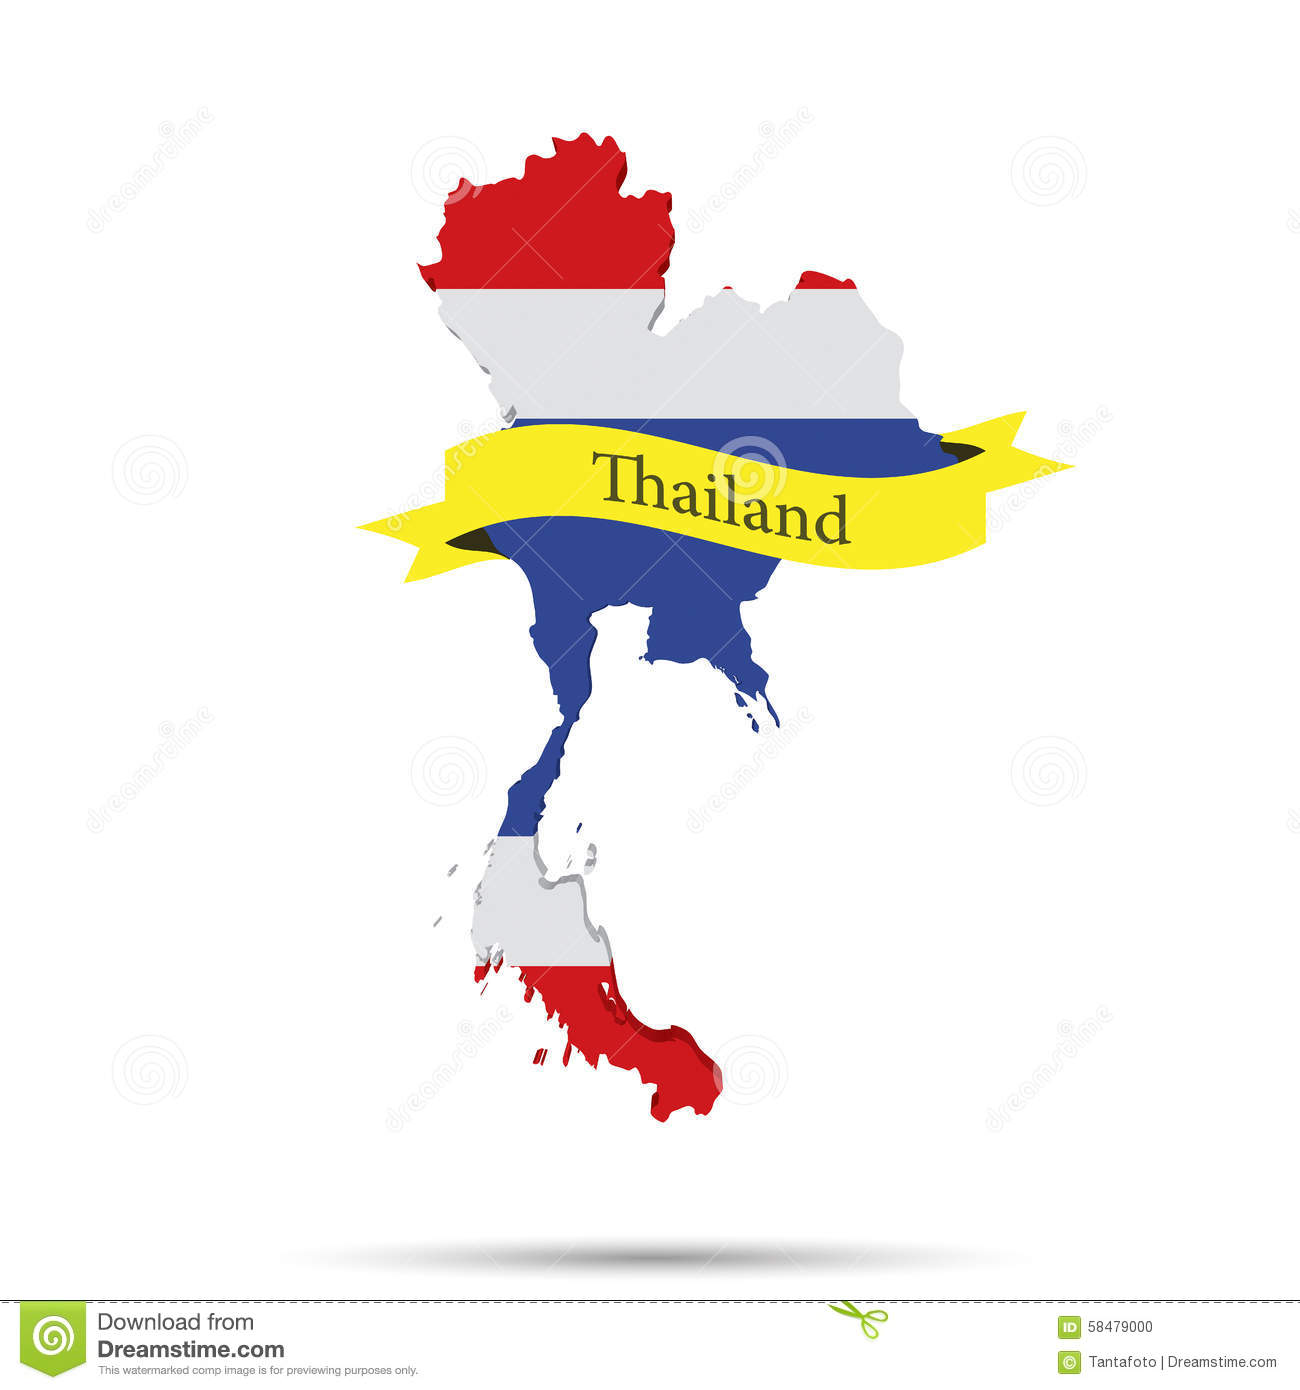 Thailand map and ribbon on white background